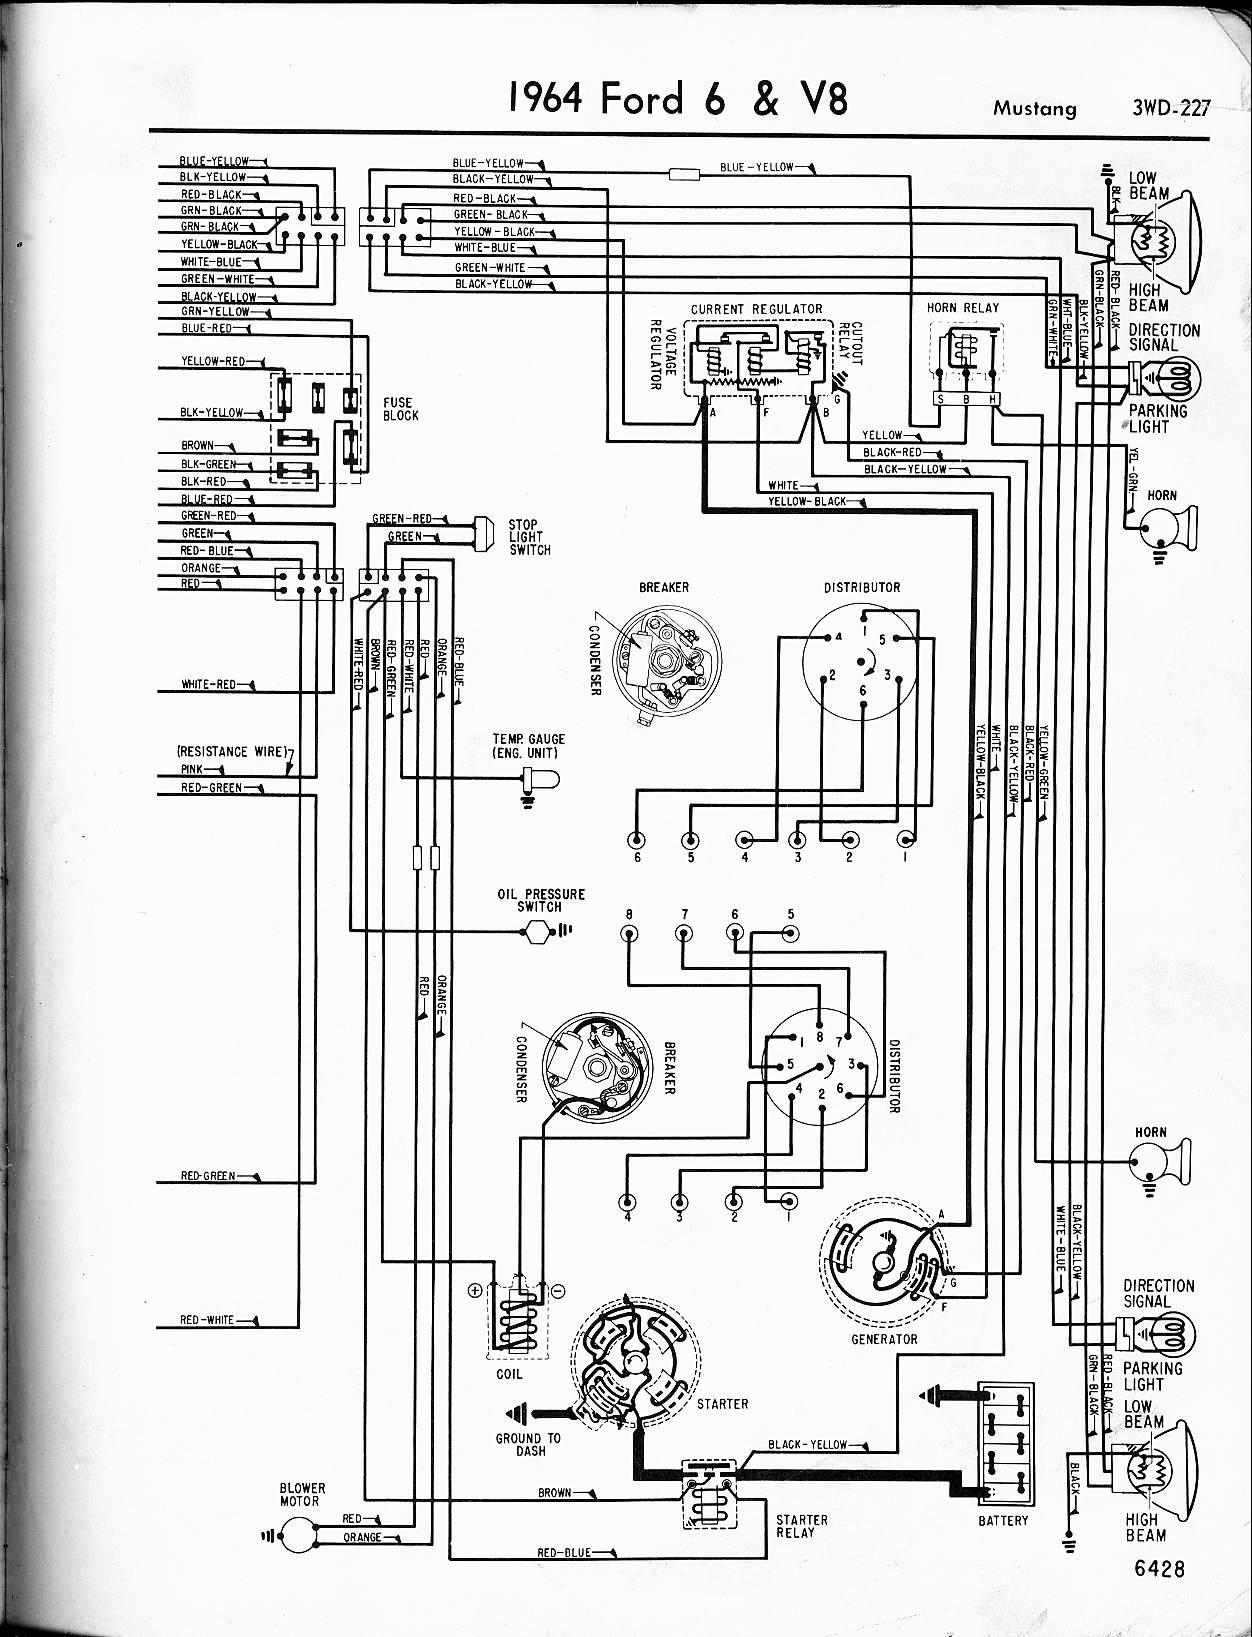 1964 ford fairlane ignition wiring diagram